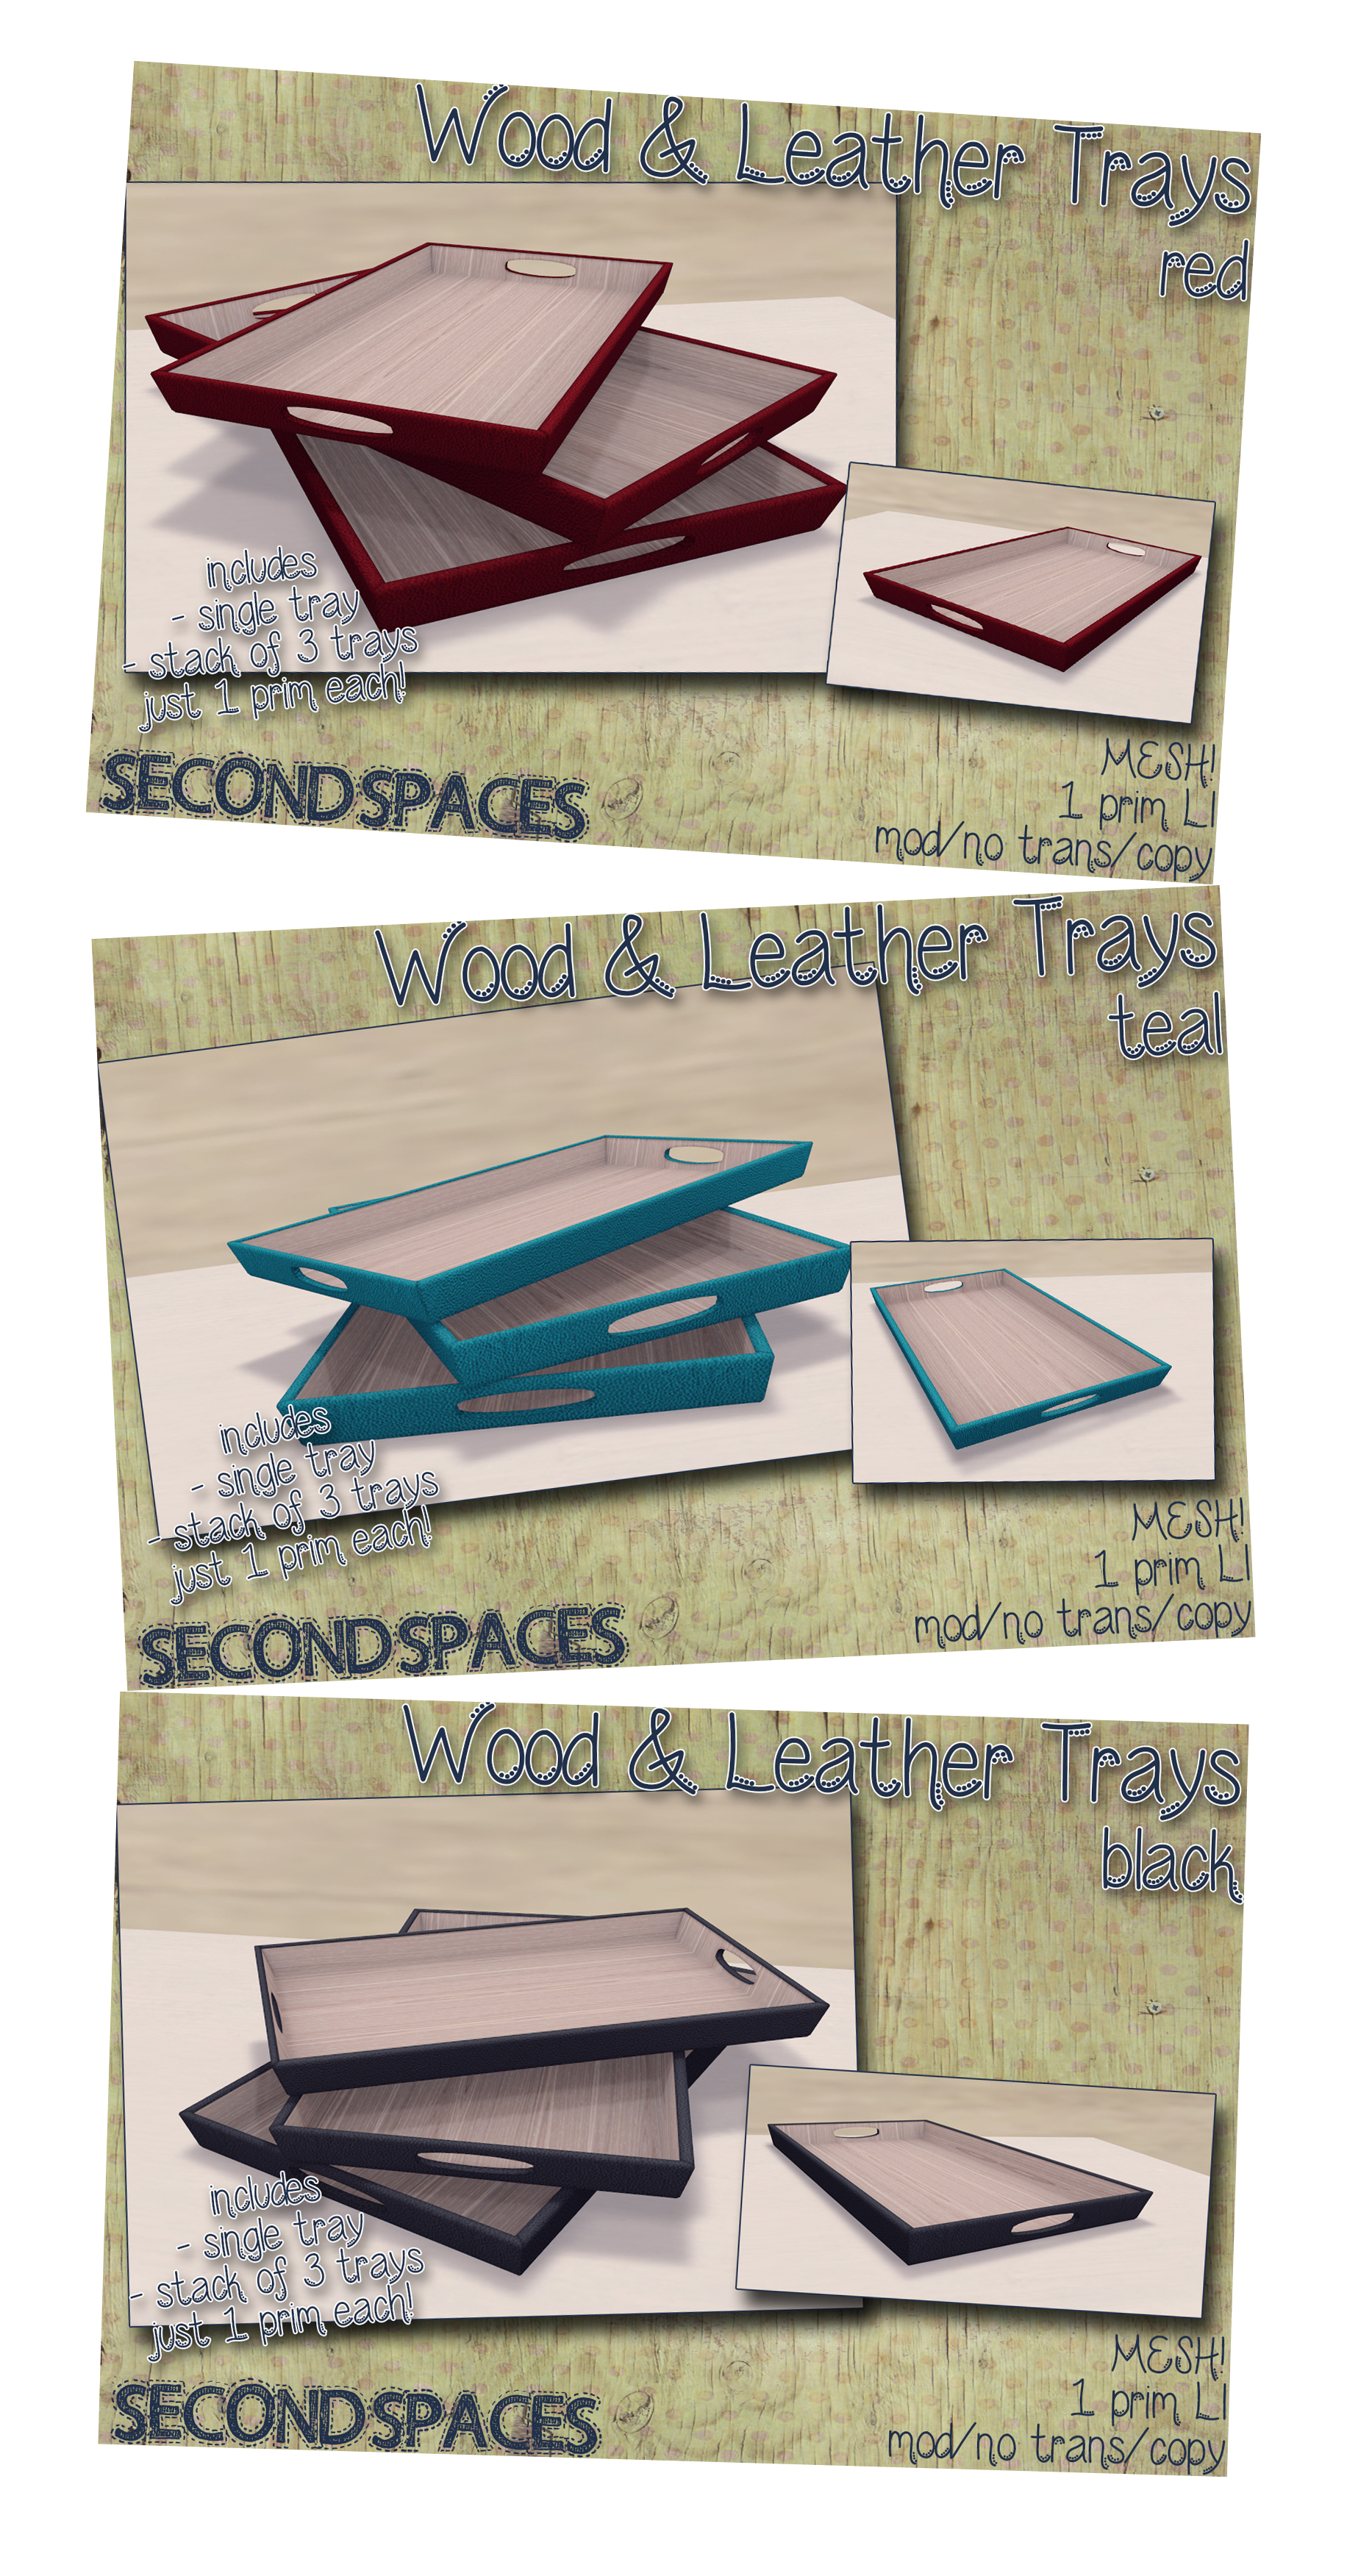 wood_leather collage.jpg